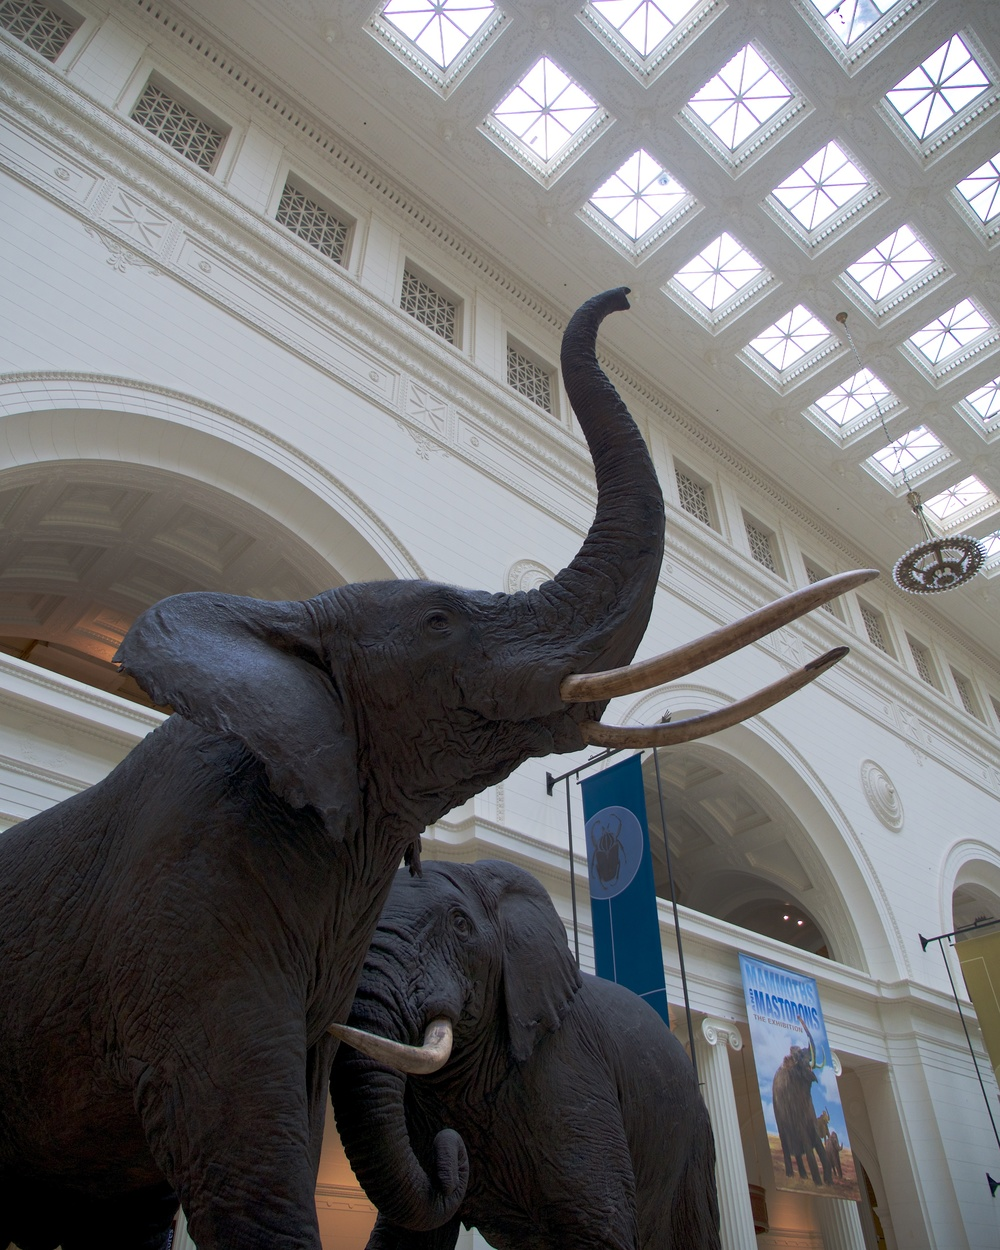 Elephants in the main hall